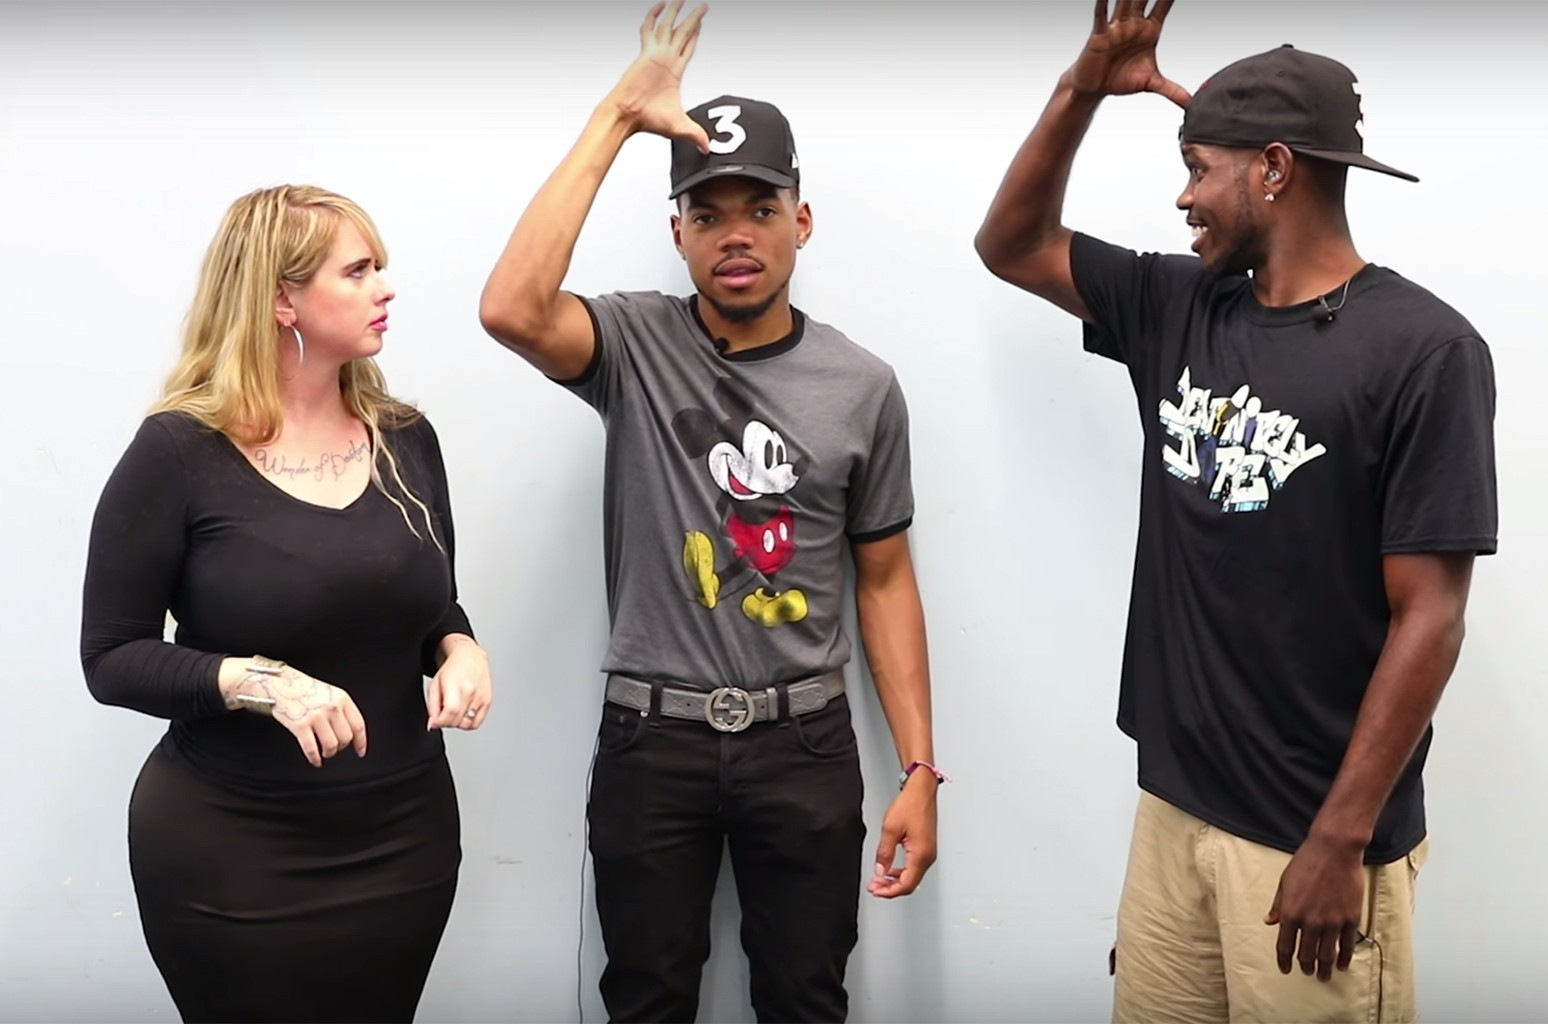 Chance the Rapper Sign Language, 2017